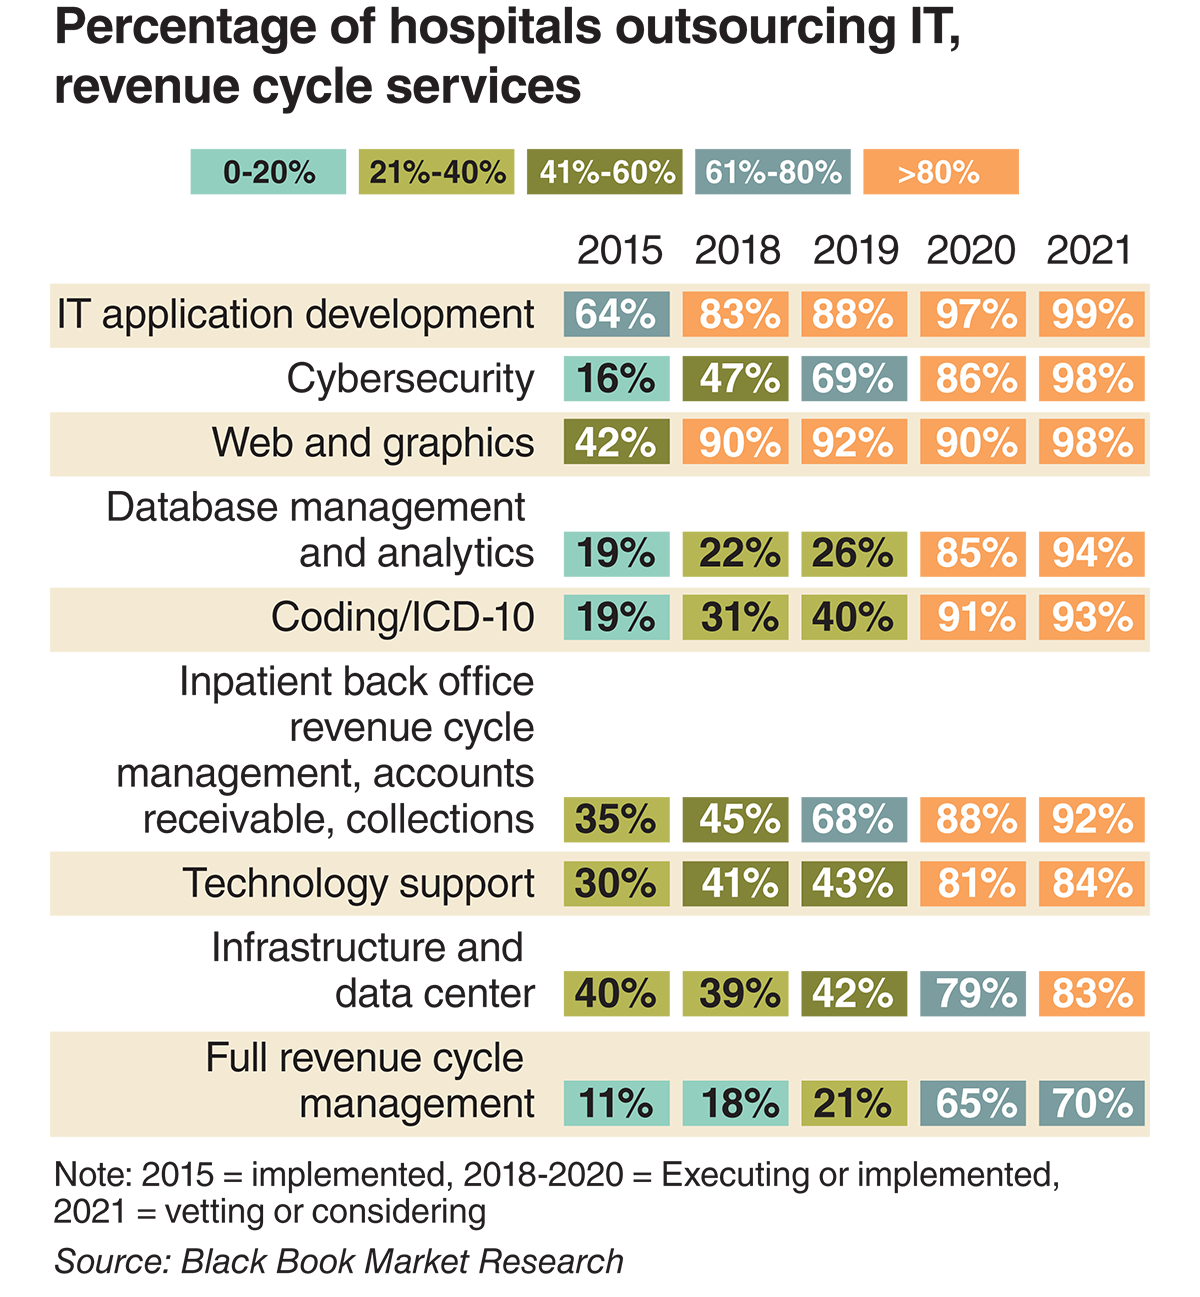 Percentage of hospitals outsourcing IT, revenue cycle services